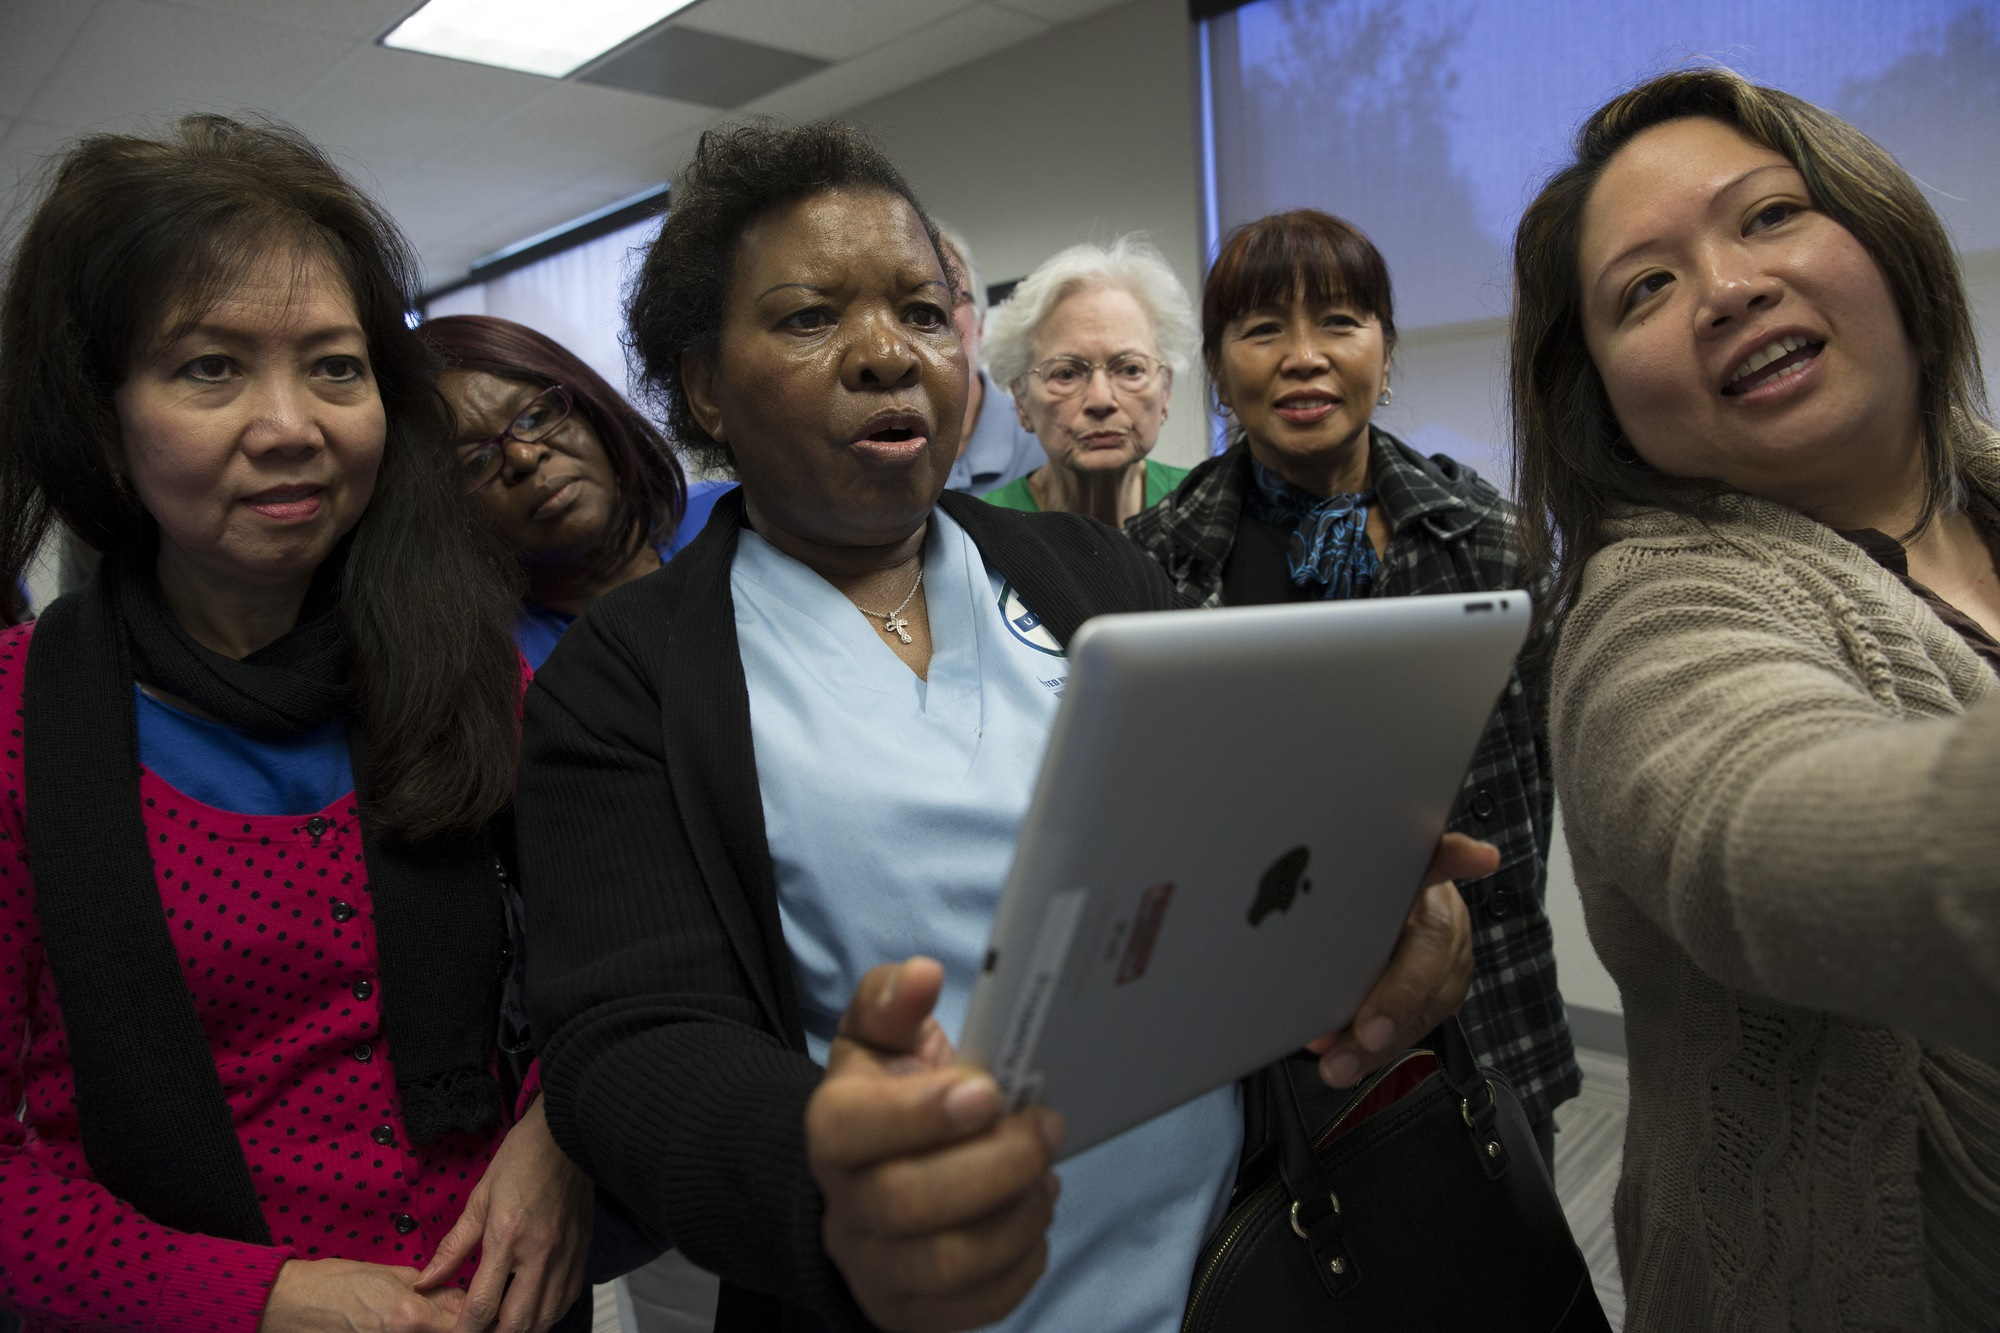 women looking in awe at an iPad